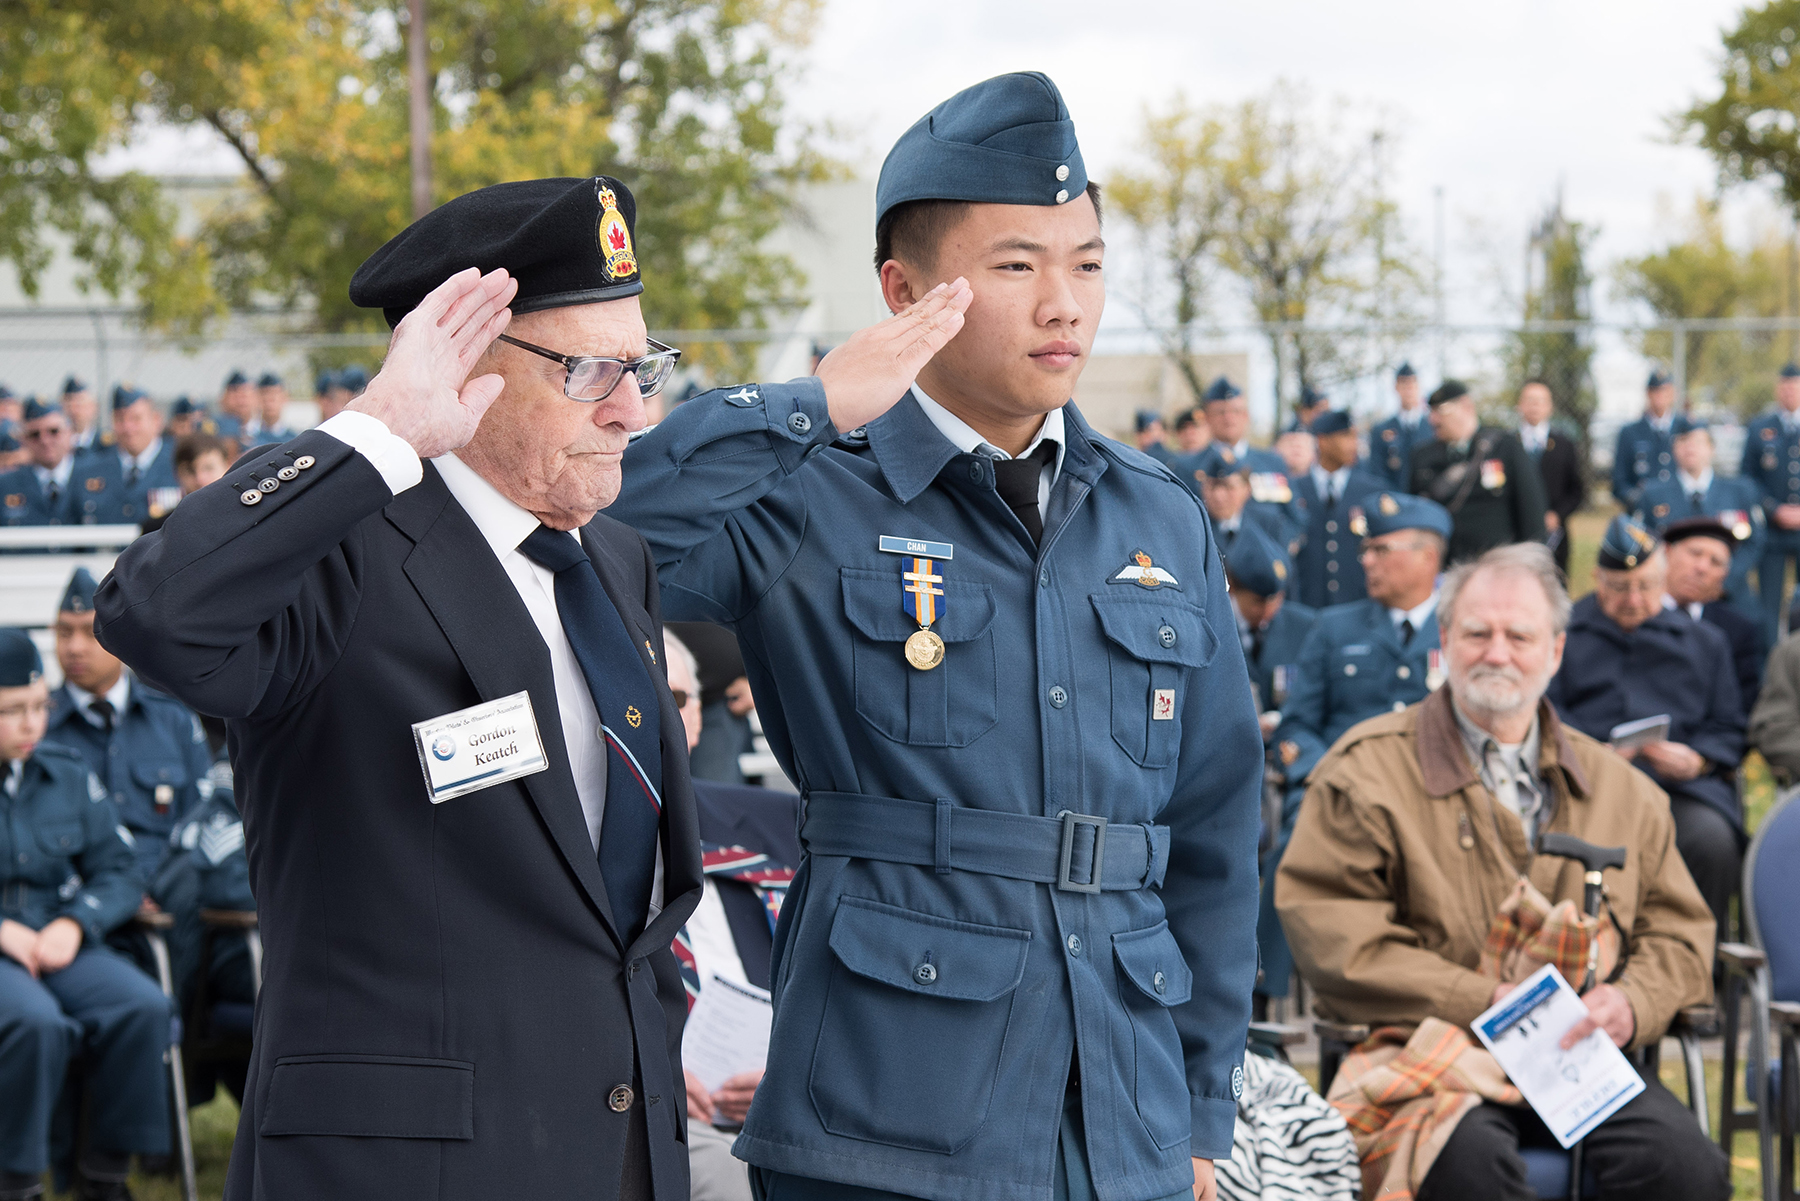 Royal Australian Air Force Flying Officer (retired) Gordon Keatch, accompanied by Royal Canadian Air Cadet Warrant Officer 1st Class Anson Chan, salutes after laying a wreath during the Battle of Britain parade on September 17, 2017, in the Garden of Memories at 17 Wing Winnipeg, Manitoba. PHOTO: Corporal Justin Ancelin, WG-2017-0337-044